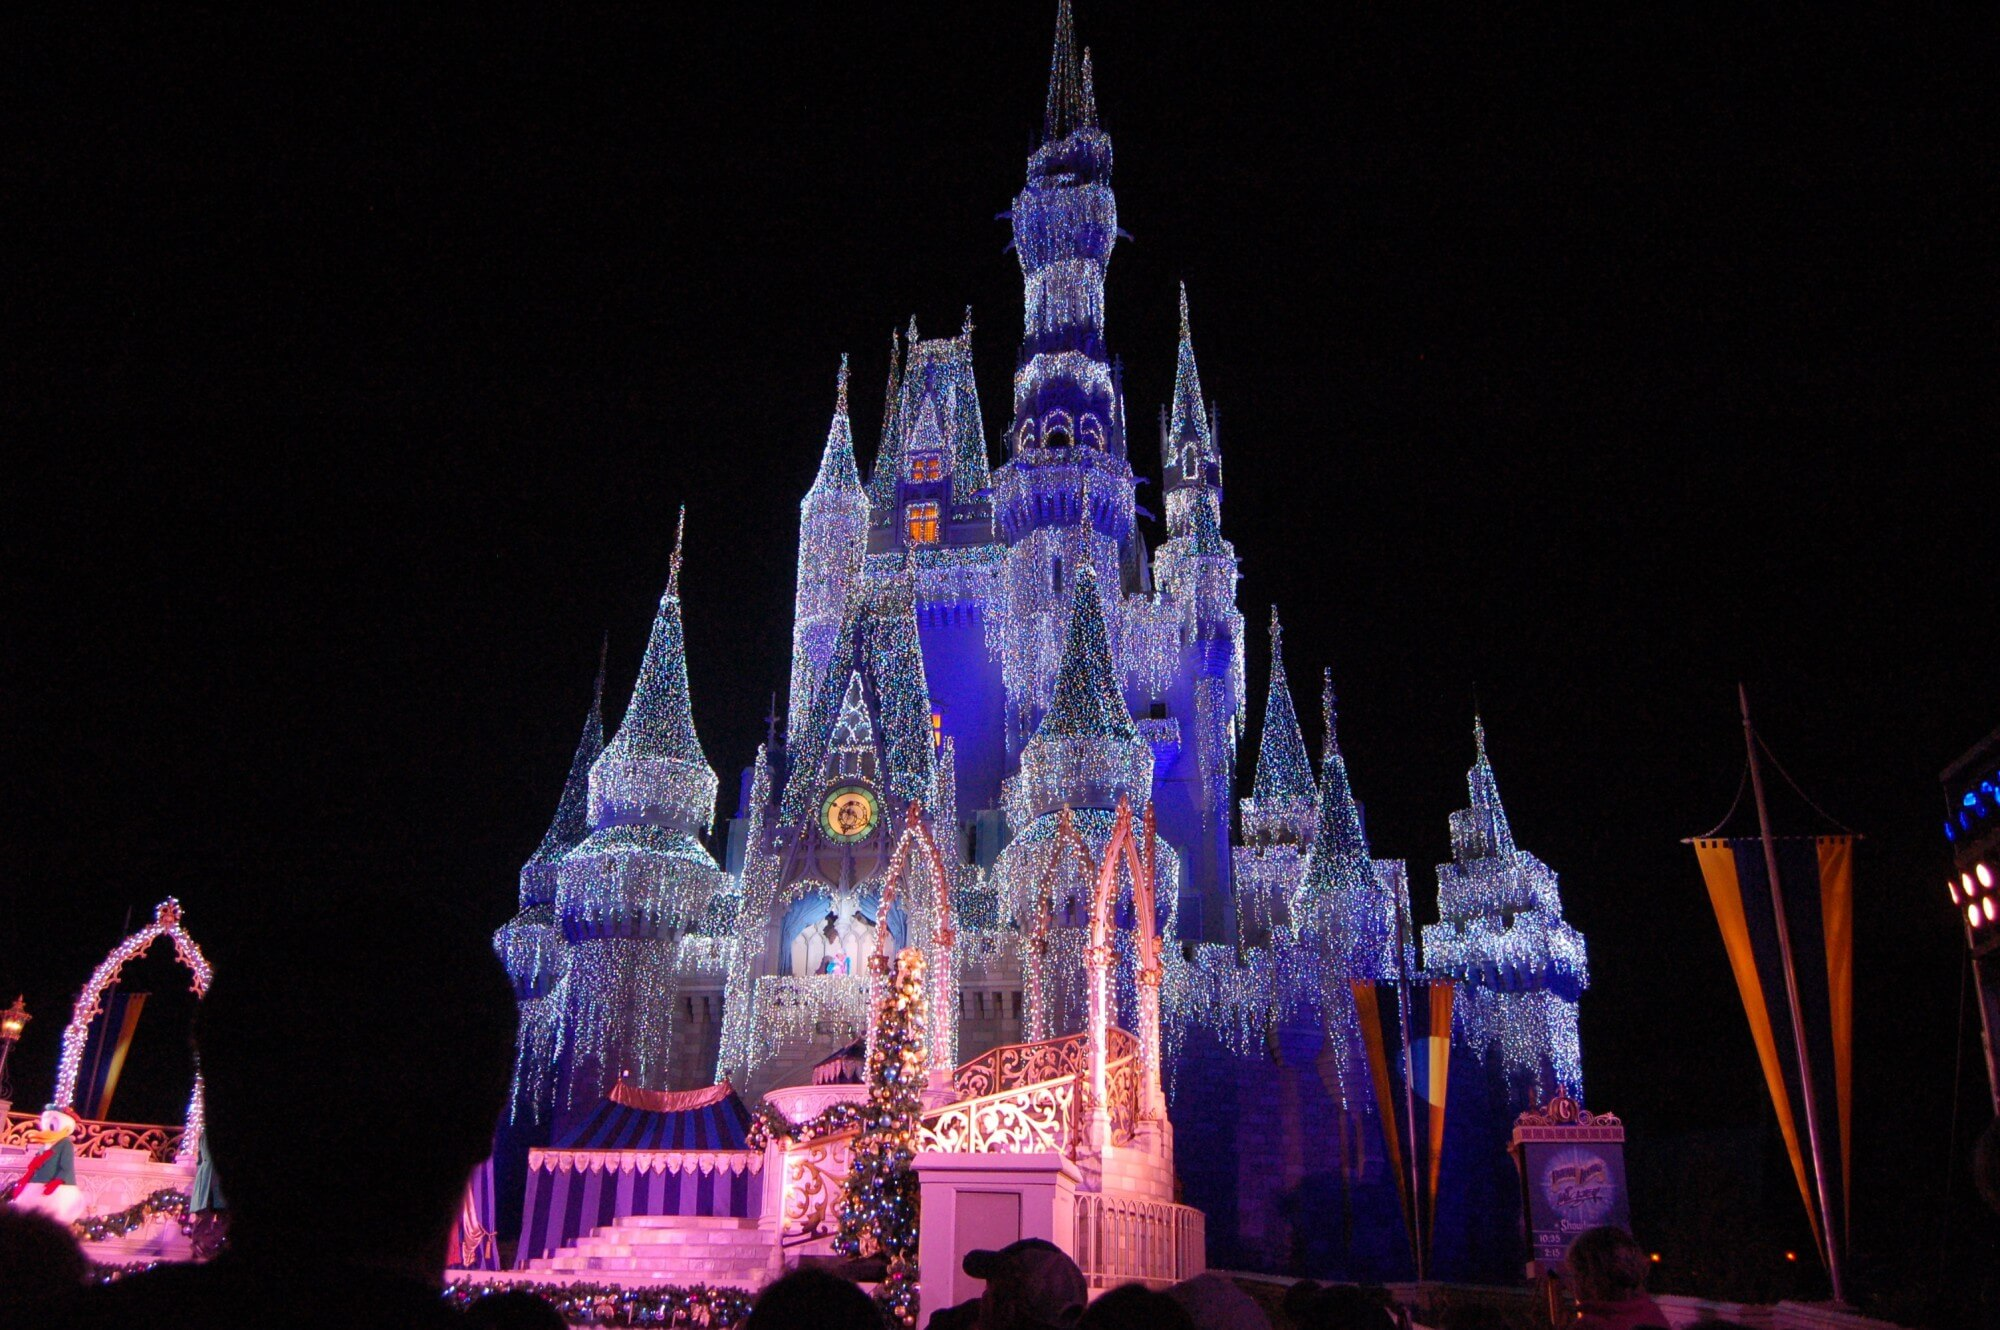 How to Decide Which Disney Park to Go to on a Short Trip